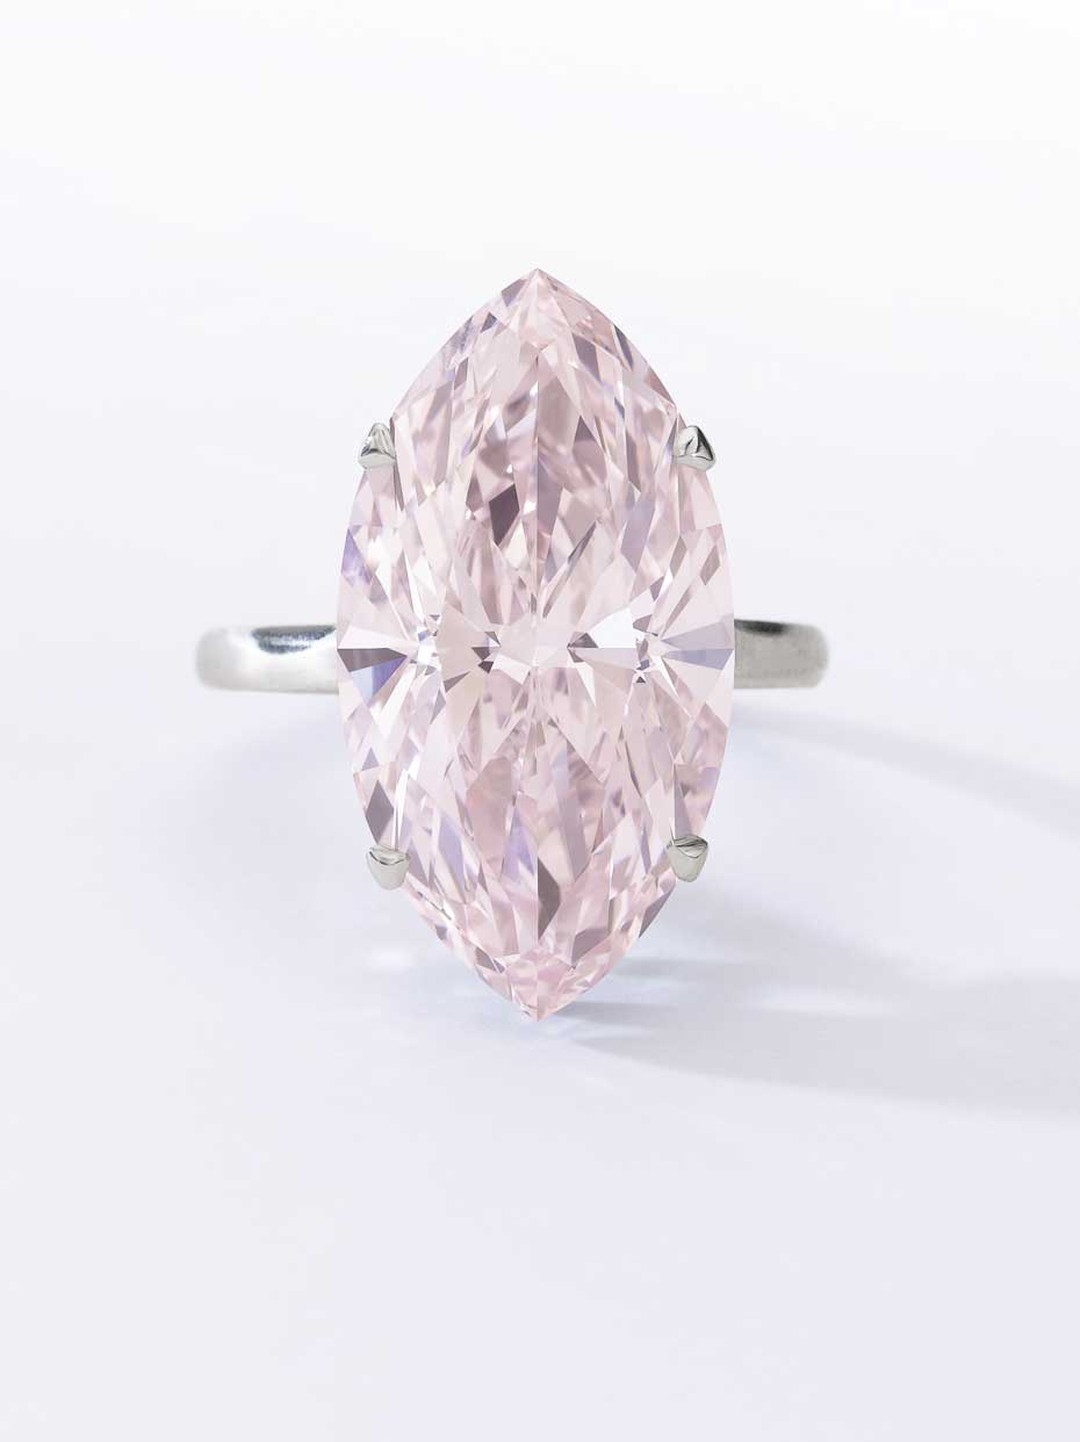 Very Fine Fancy Pink diamond ring featuring a 12.07ct marquise-cut pink diamond. Sold for CHF 6,437,000 (estimate: CHF 3,570,000-6,200,000)